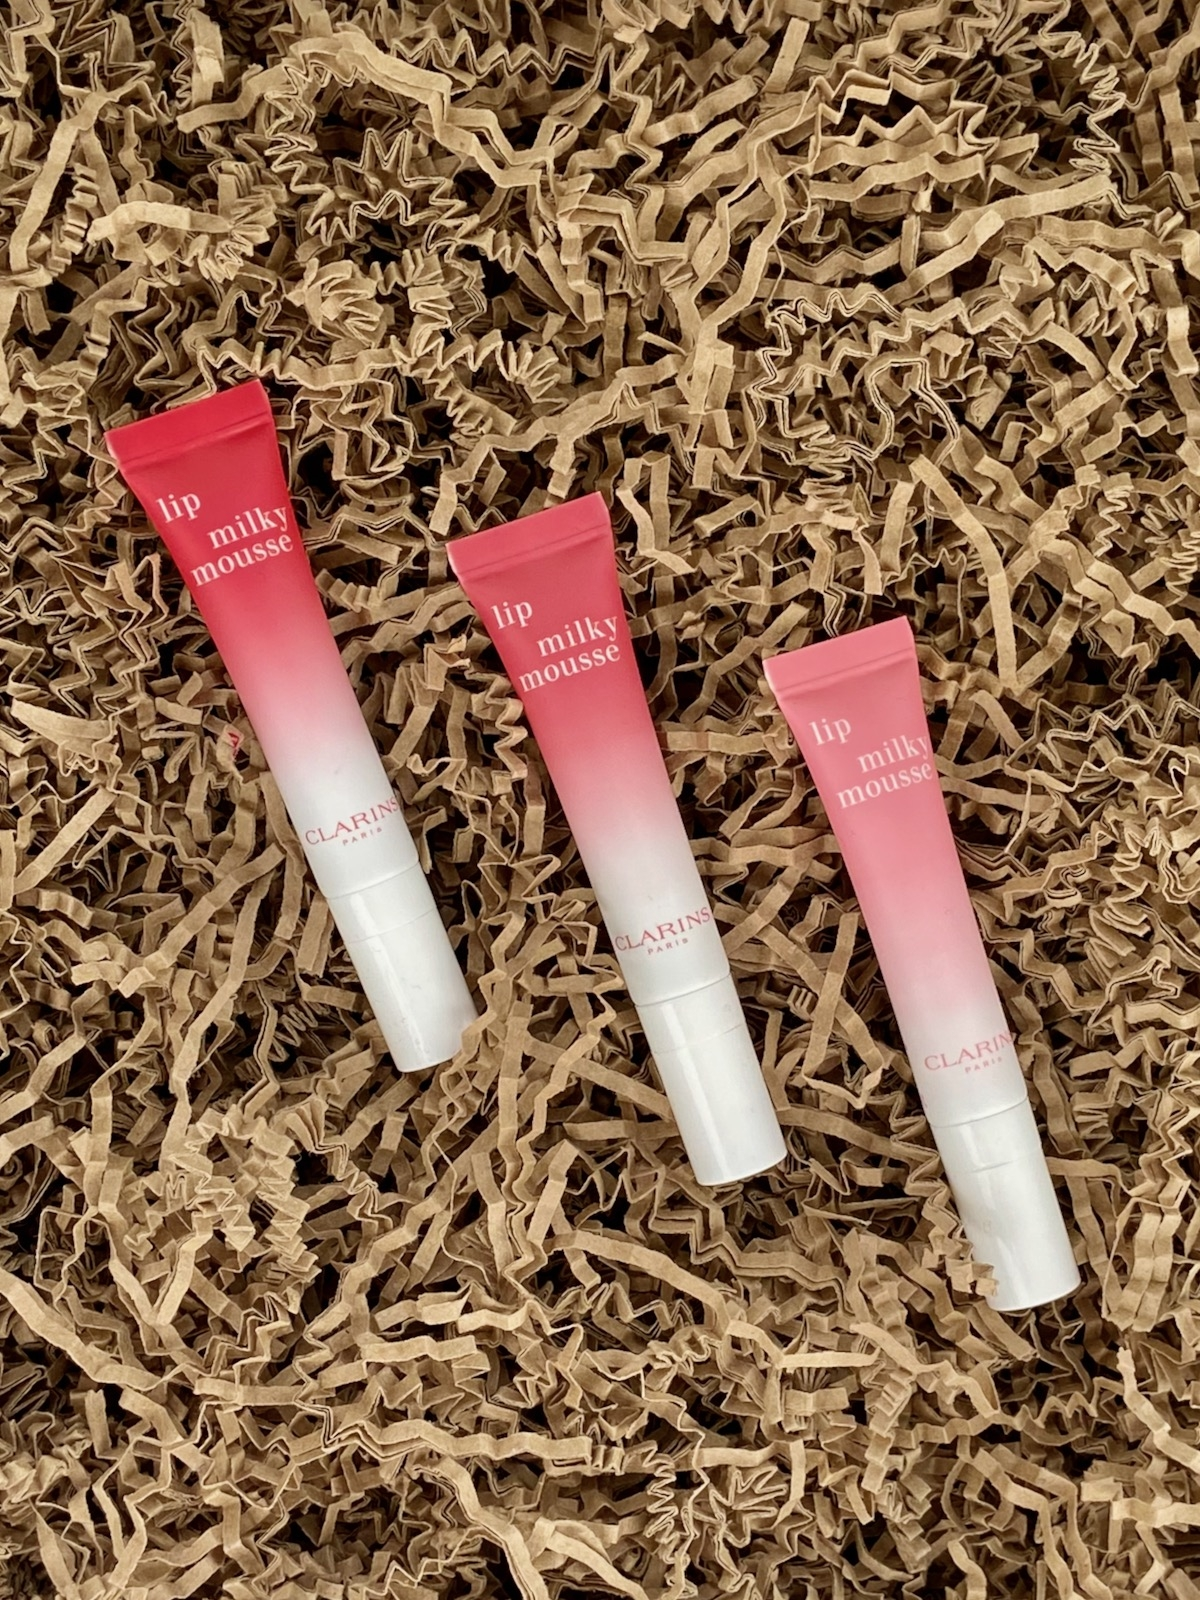 Clarins Lip Milky Mousse 01 02 03